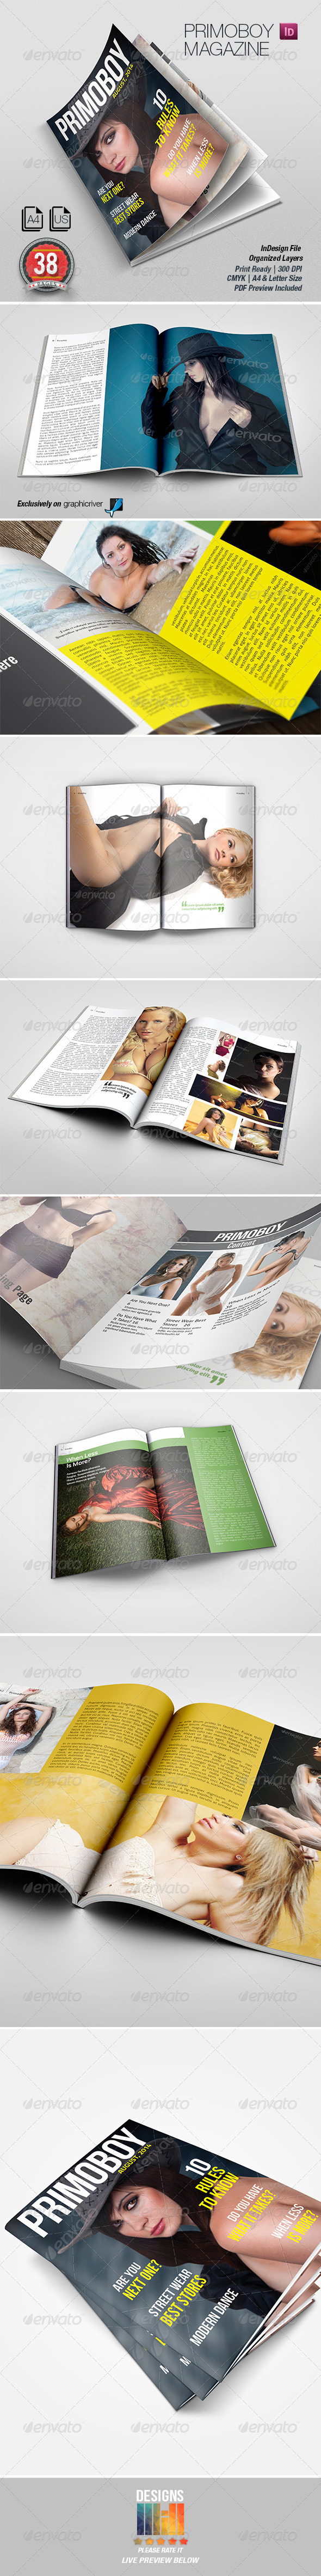 GraphicRiver Primoboy Magazine 8621966